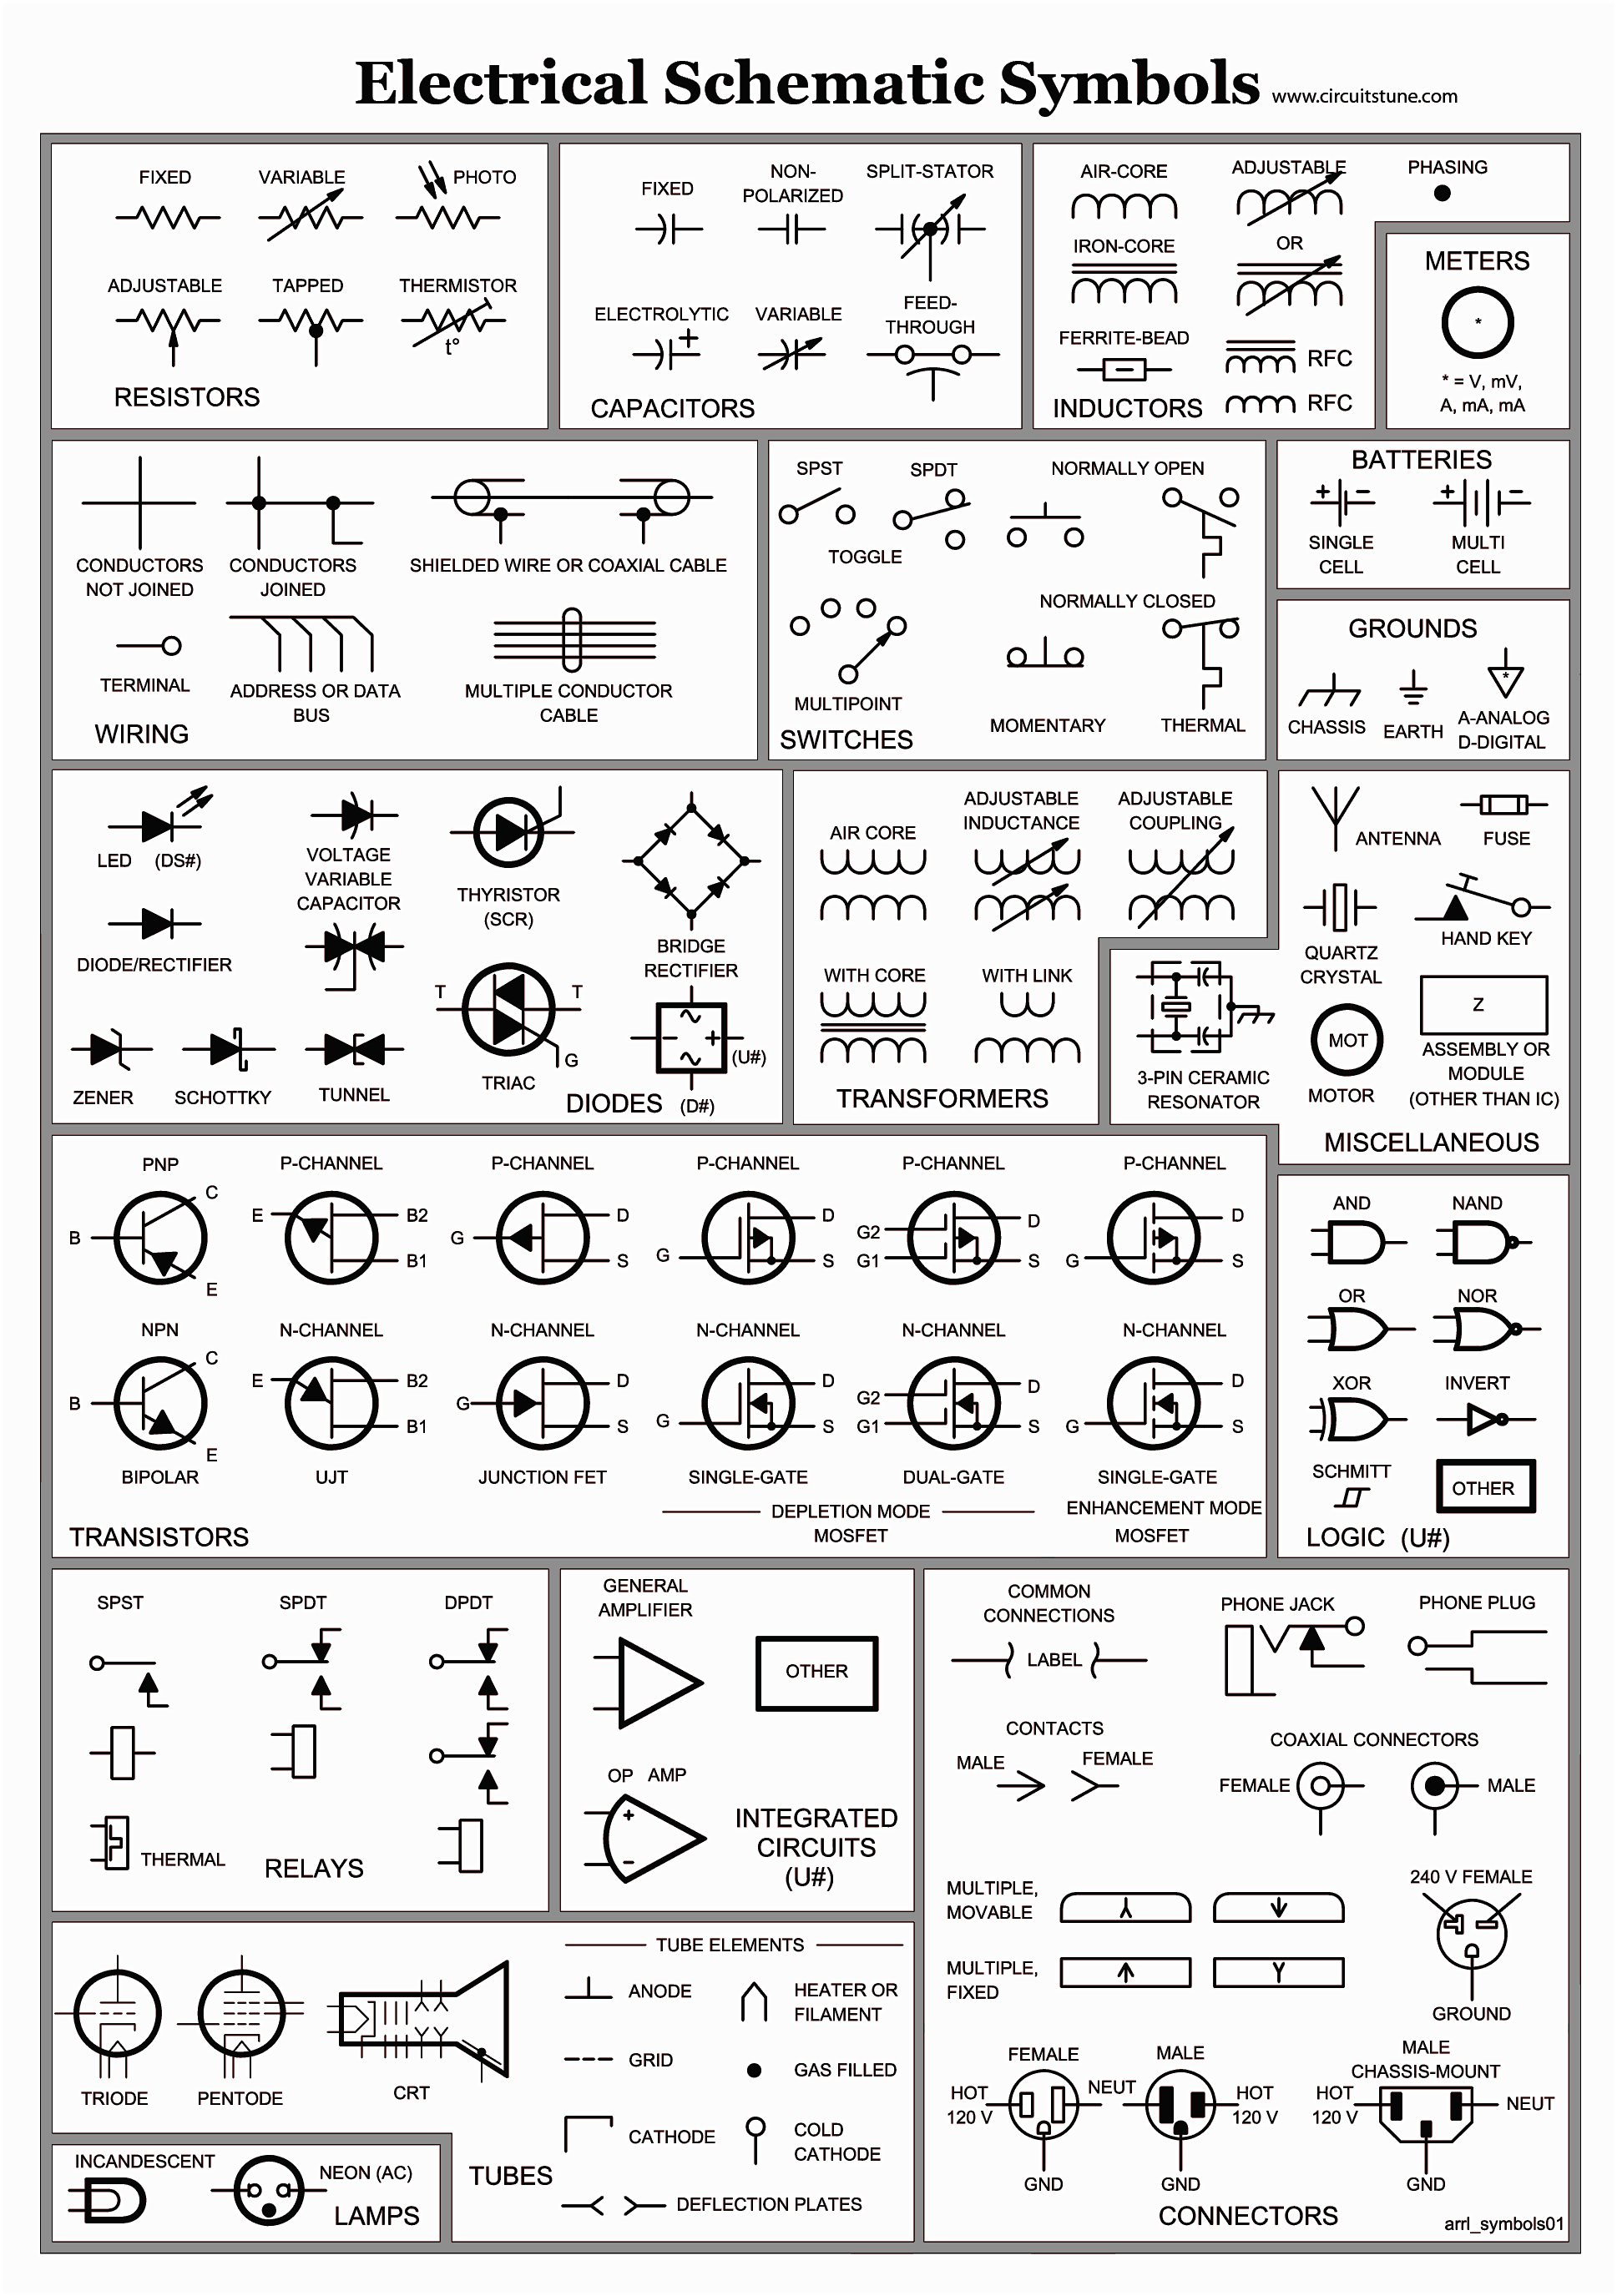 [DIAGRAM_1JK]  Wiring Diagram Reading How To Read Electrical Drawings Pdf For Bright  Symbols | Electrical schematic symbols, Electrical circuit diagram, Electrical  wiring diagram | Wiring Diagram Reading |  | Pinterest